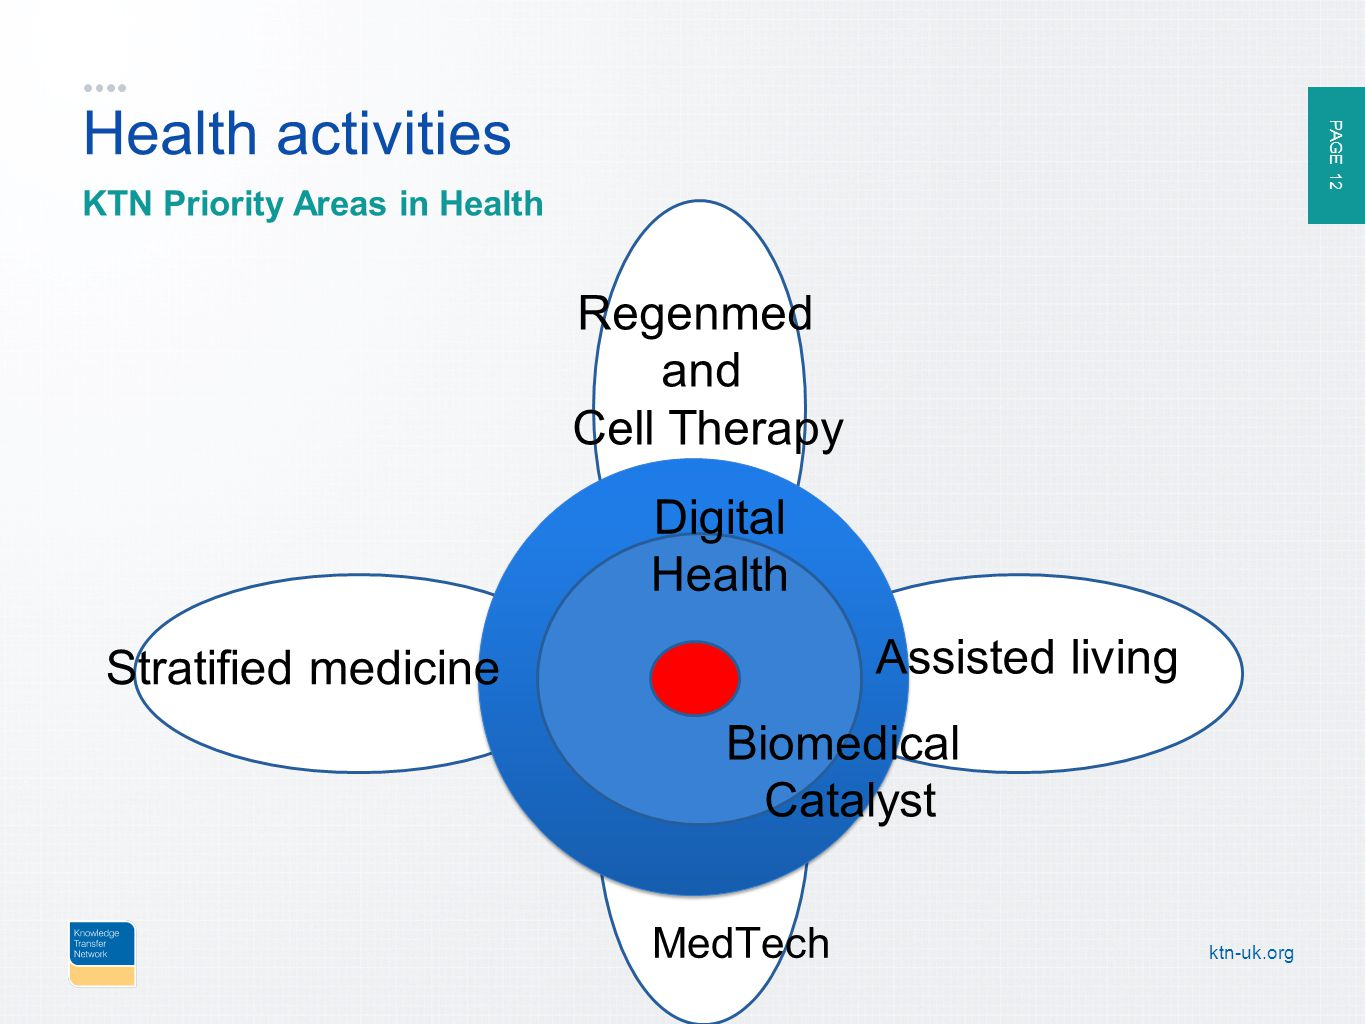 PAGE 12 ktn-uk.org SMI P Health activities KTN Priority Areas in Health Stratified medicine Assisted living Regenmed and Cell Therapy Biomedical Catalyst Digital Health MedTech